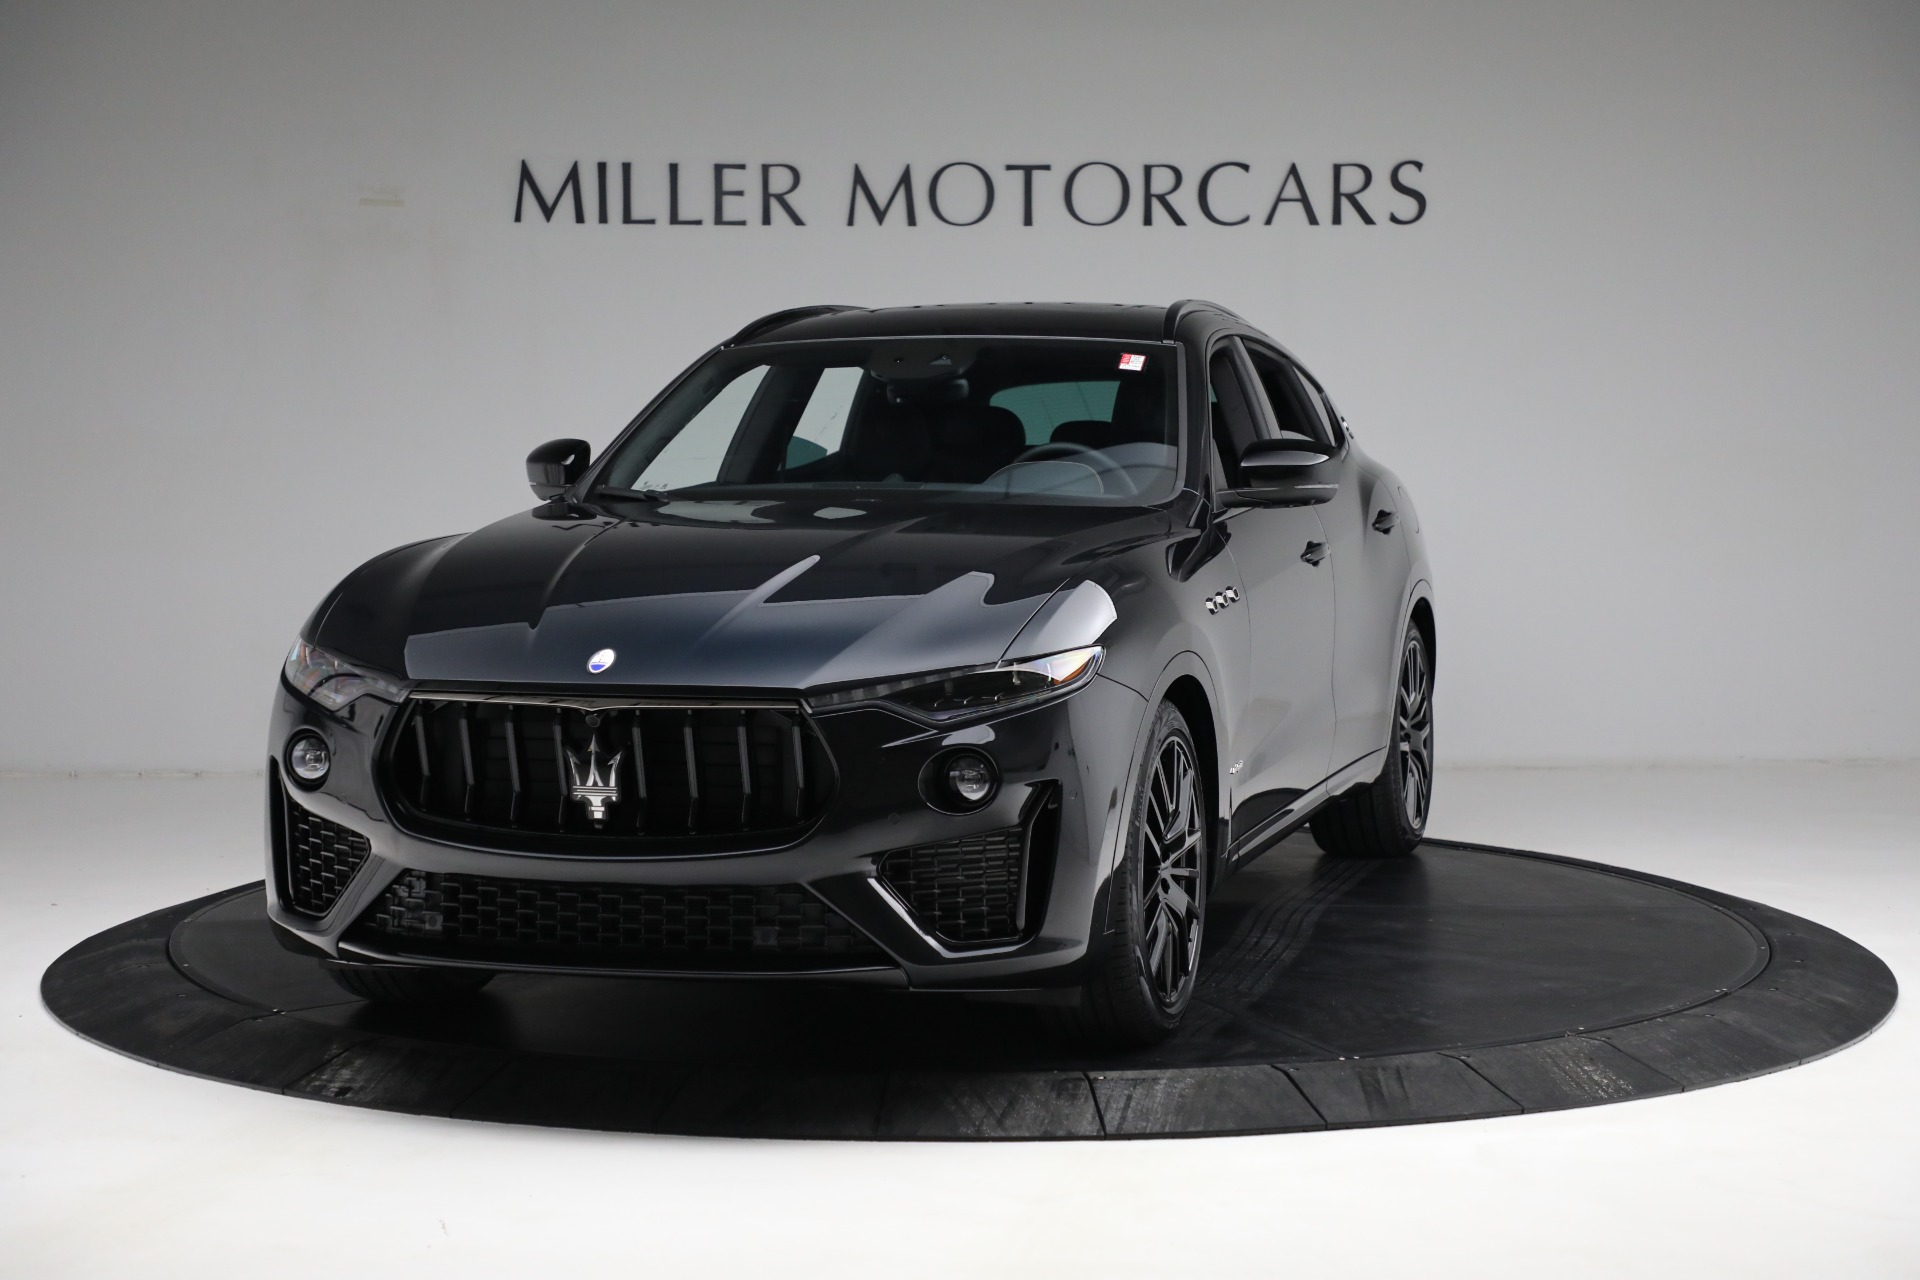 New 2021 Maserati Levante S GranSport for sale $105,849 at Bentley Greenwich in Greenwich CT 06830 1